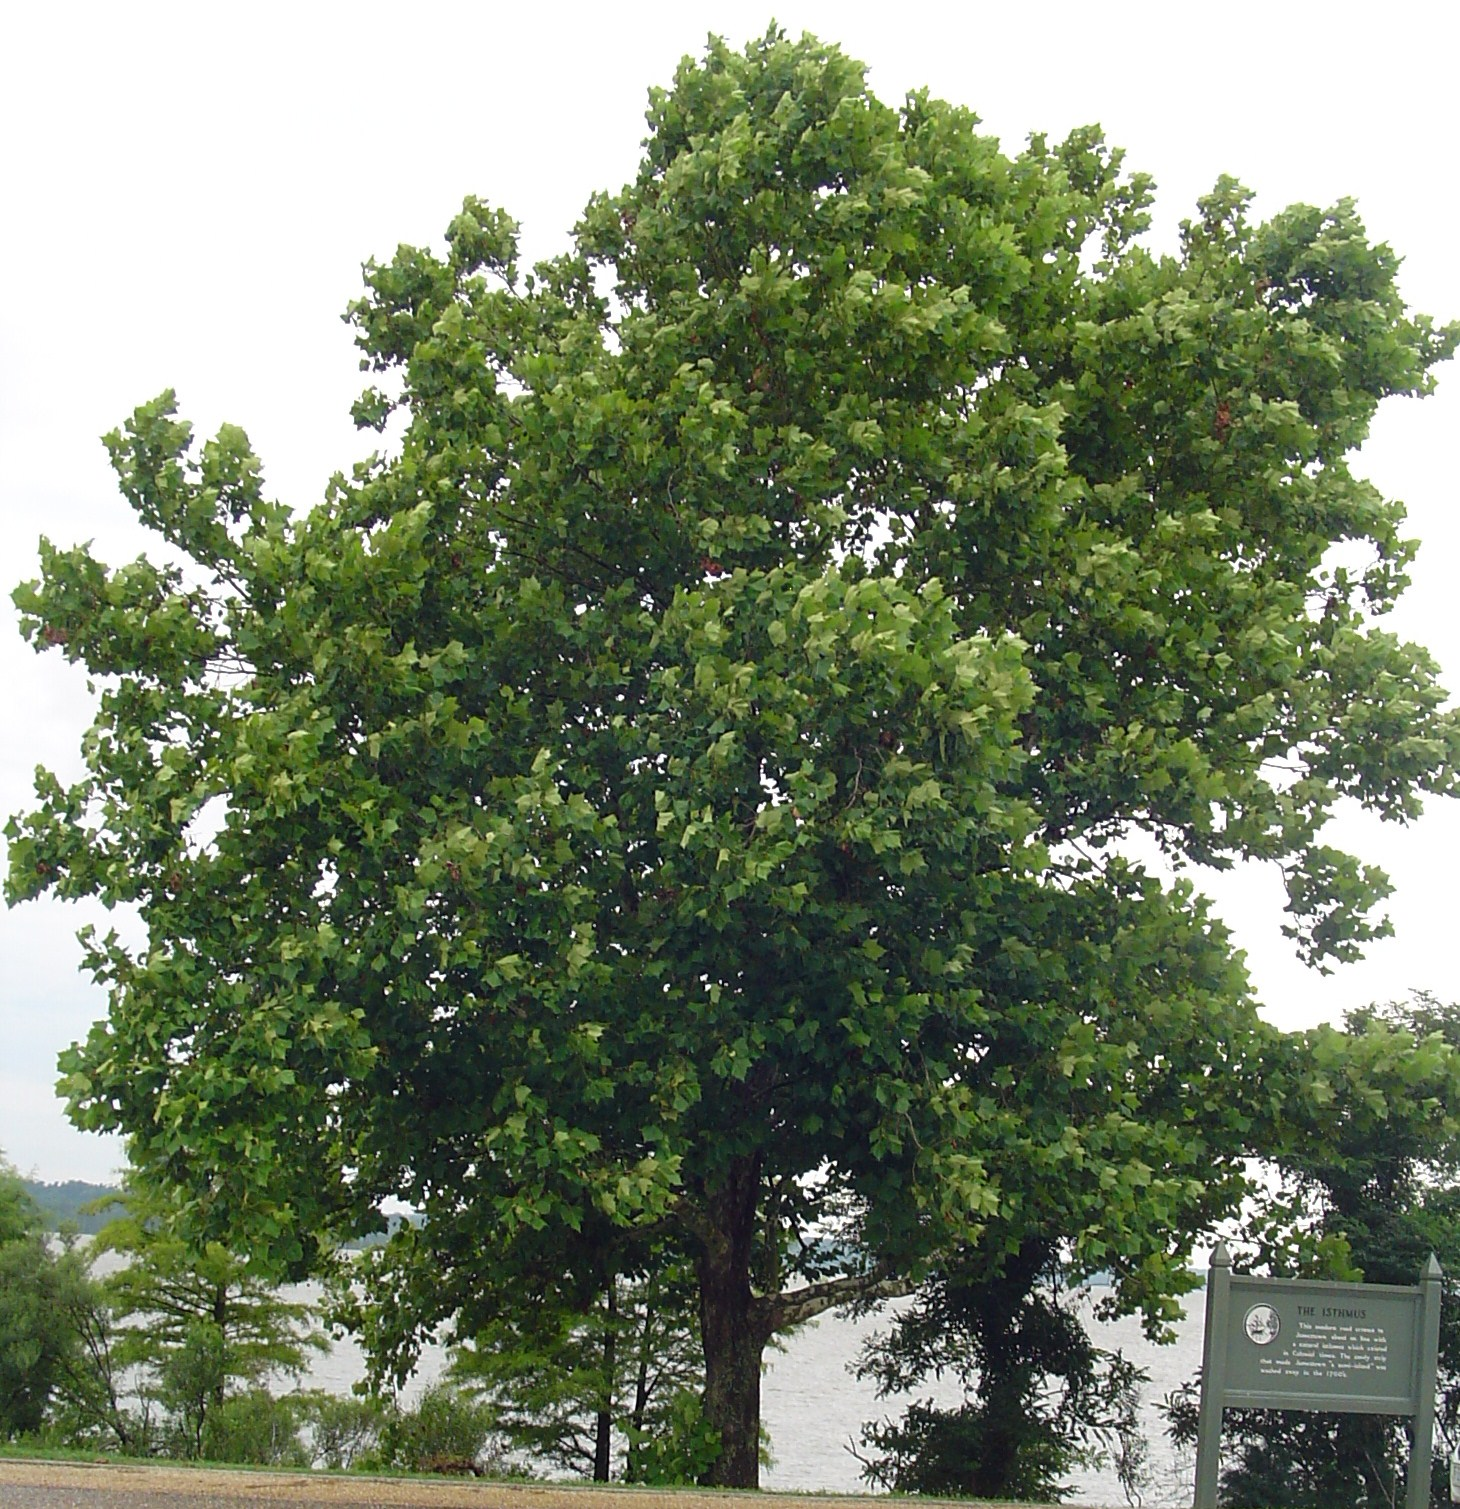 American Sycamore growing along the Colonial Parkway on the bank of the James River.